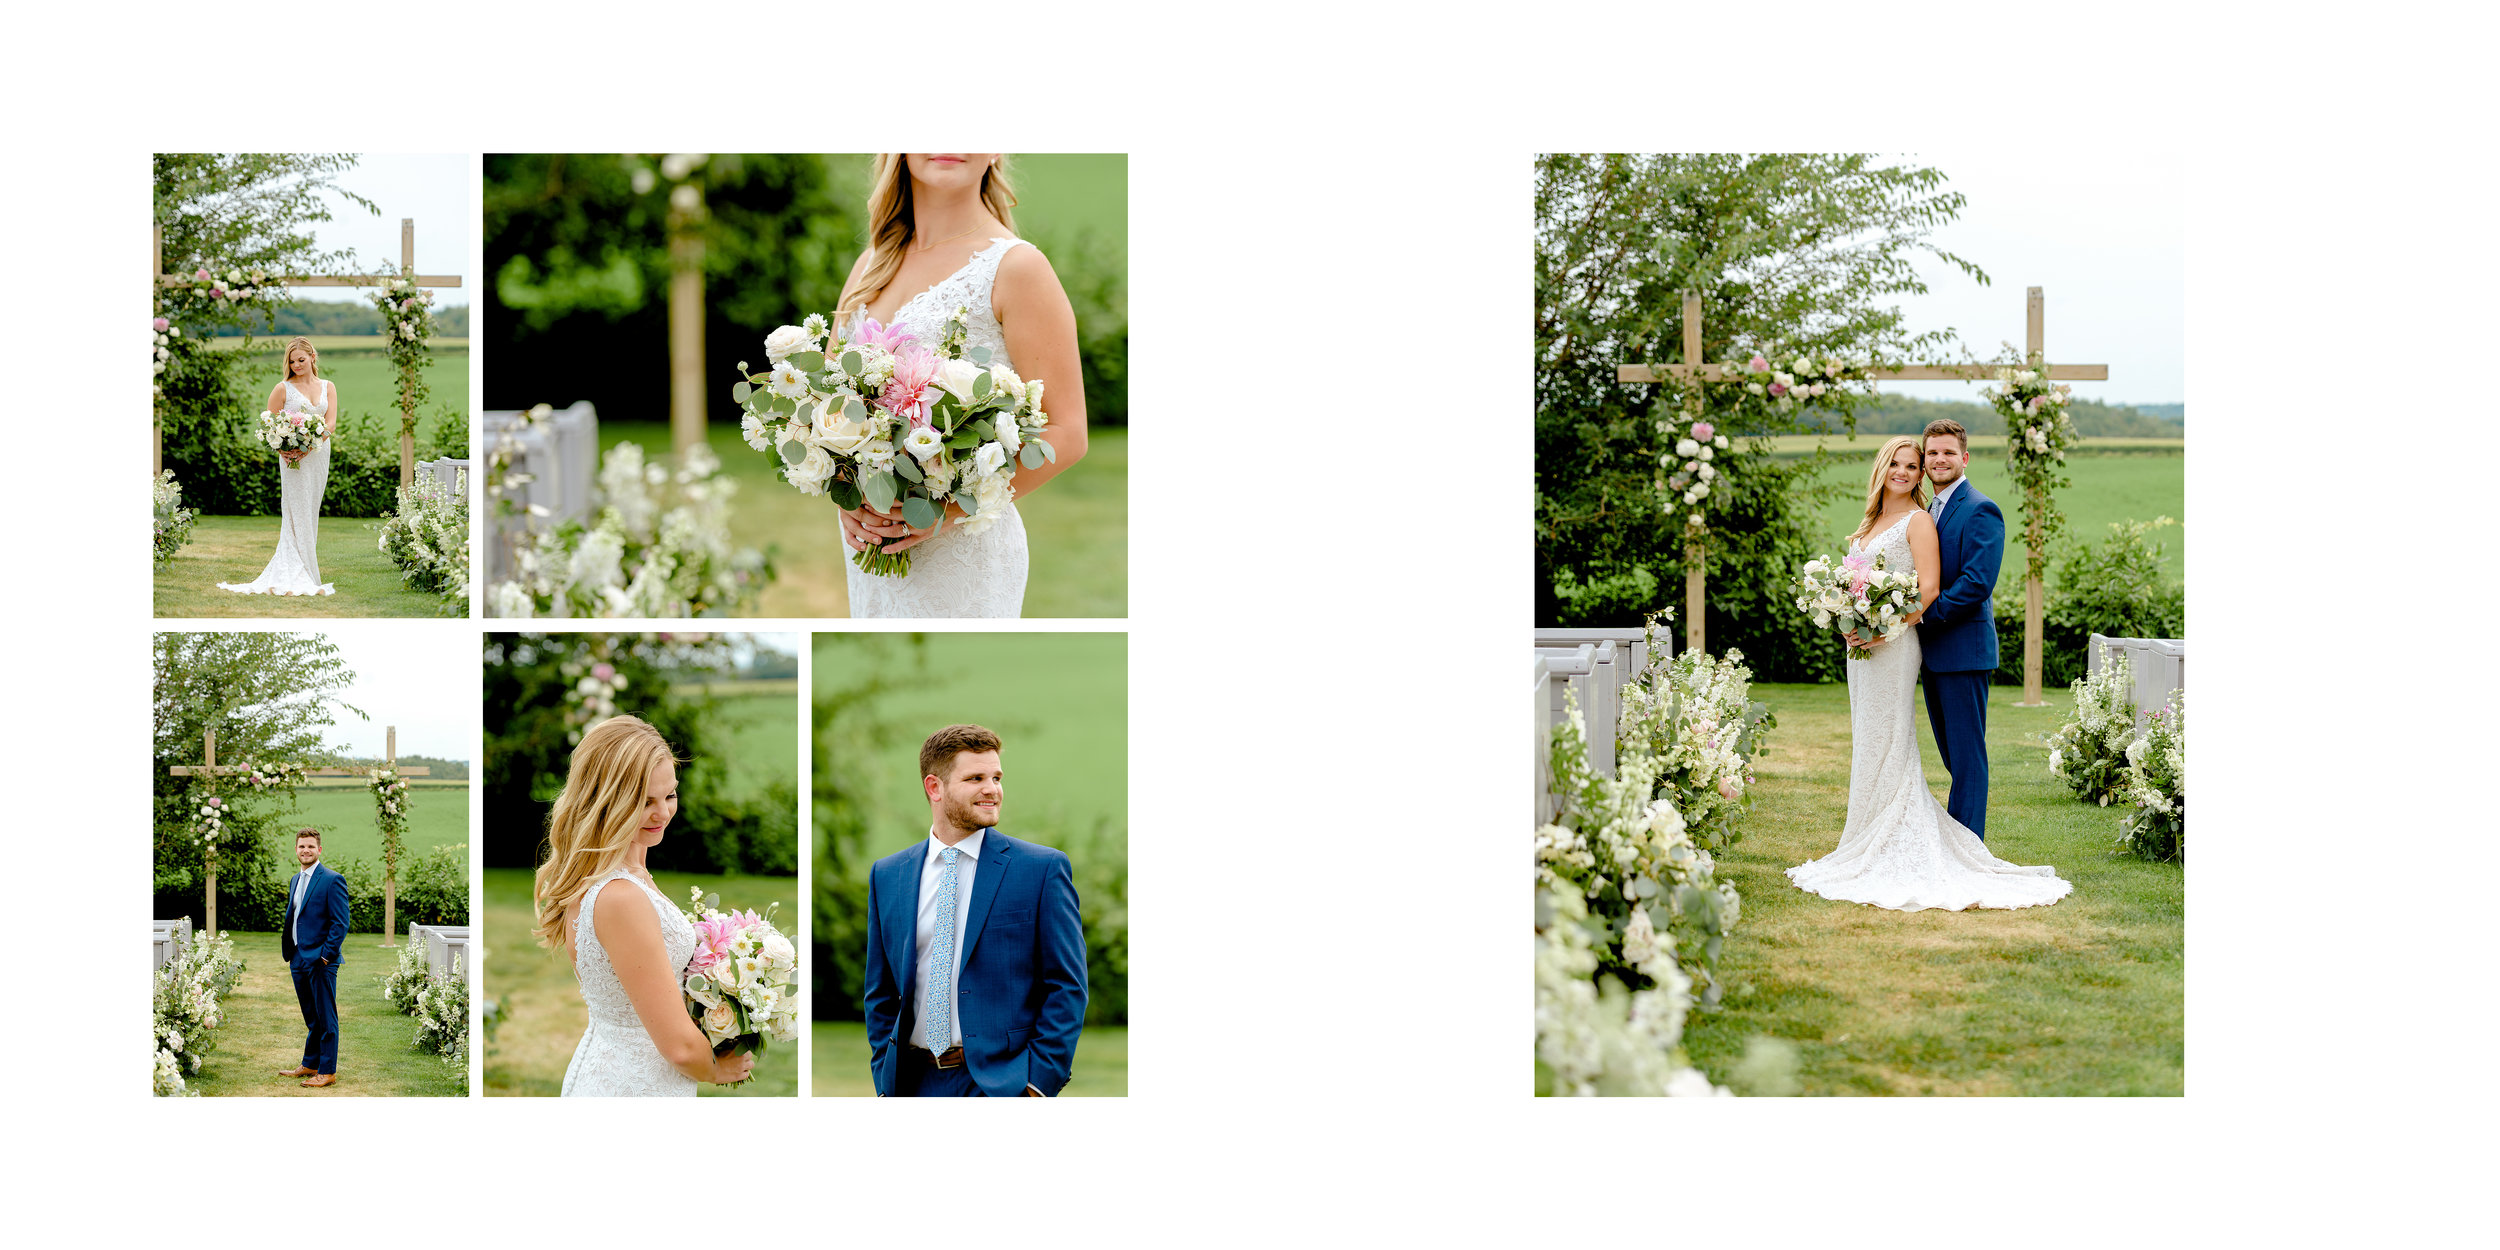 Ashley + Justin - Wedding Album_11.jpg